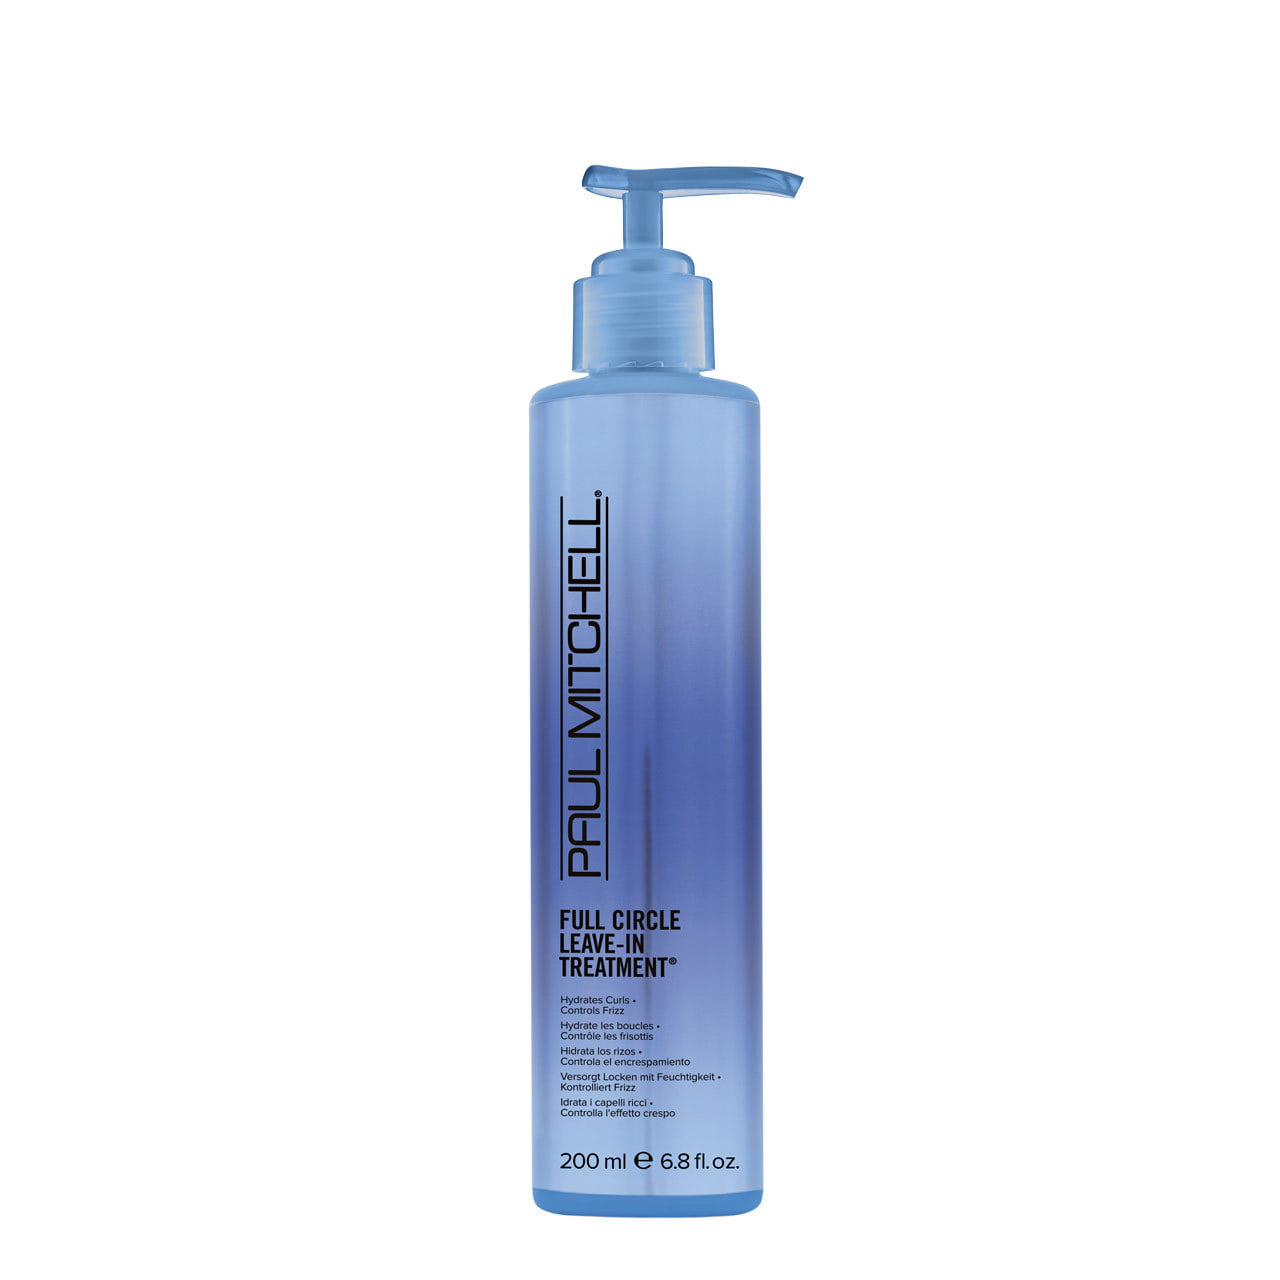 Paul Mitchell Full Circle Leave In Treatment - 200ml